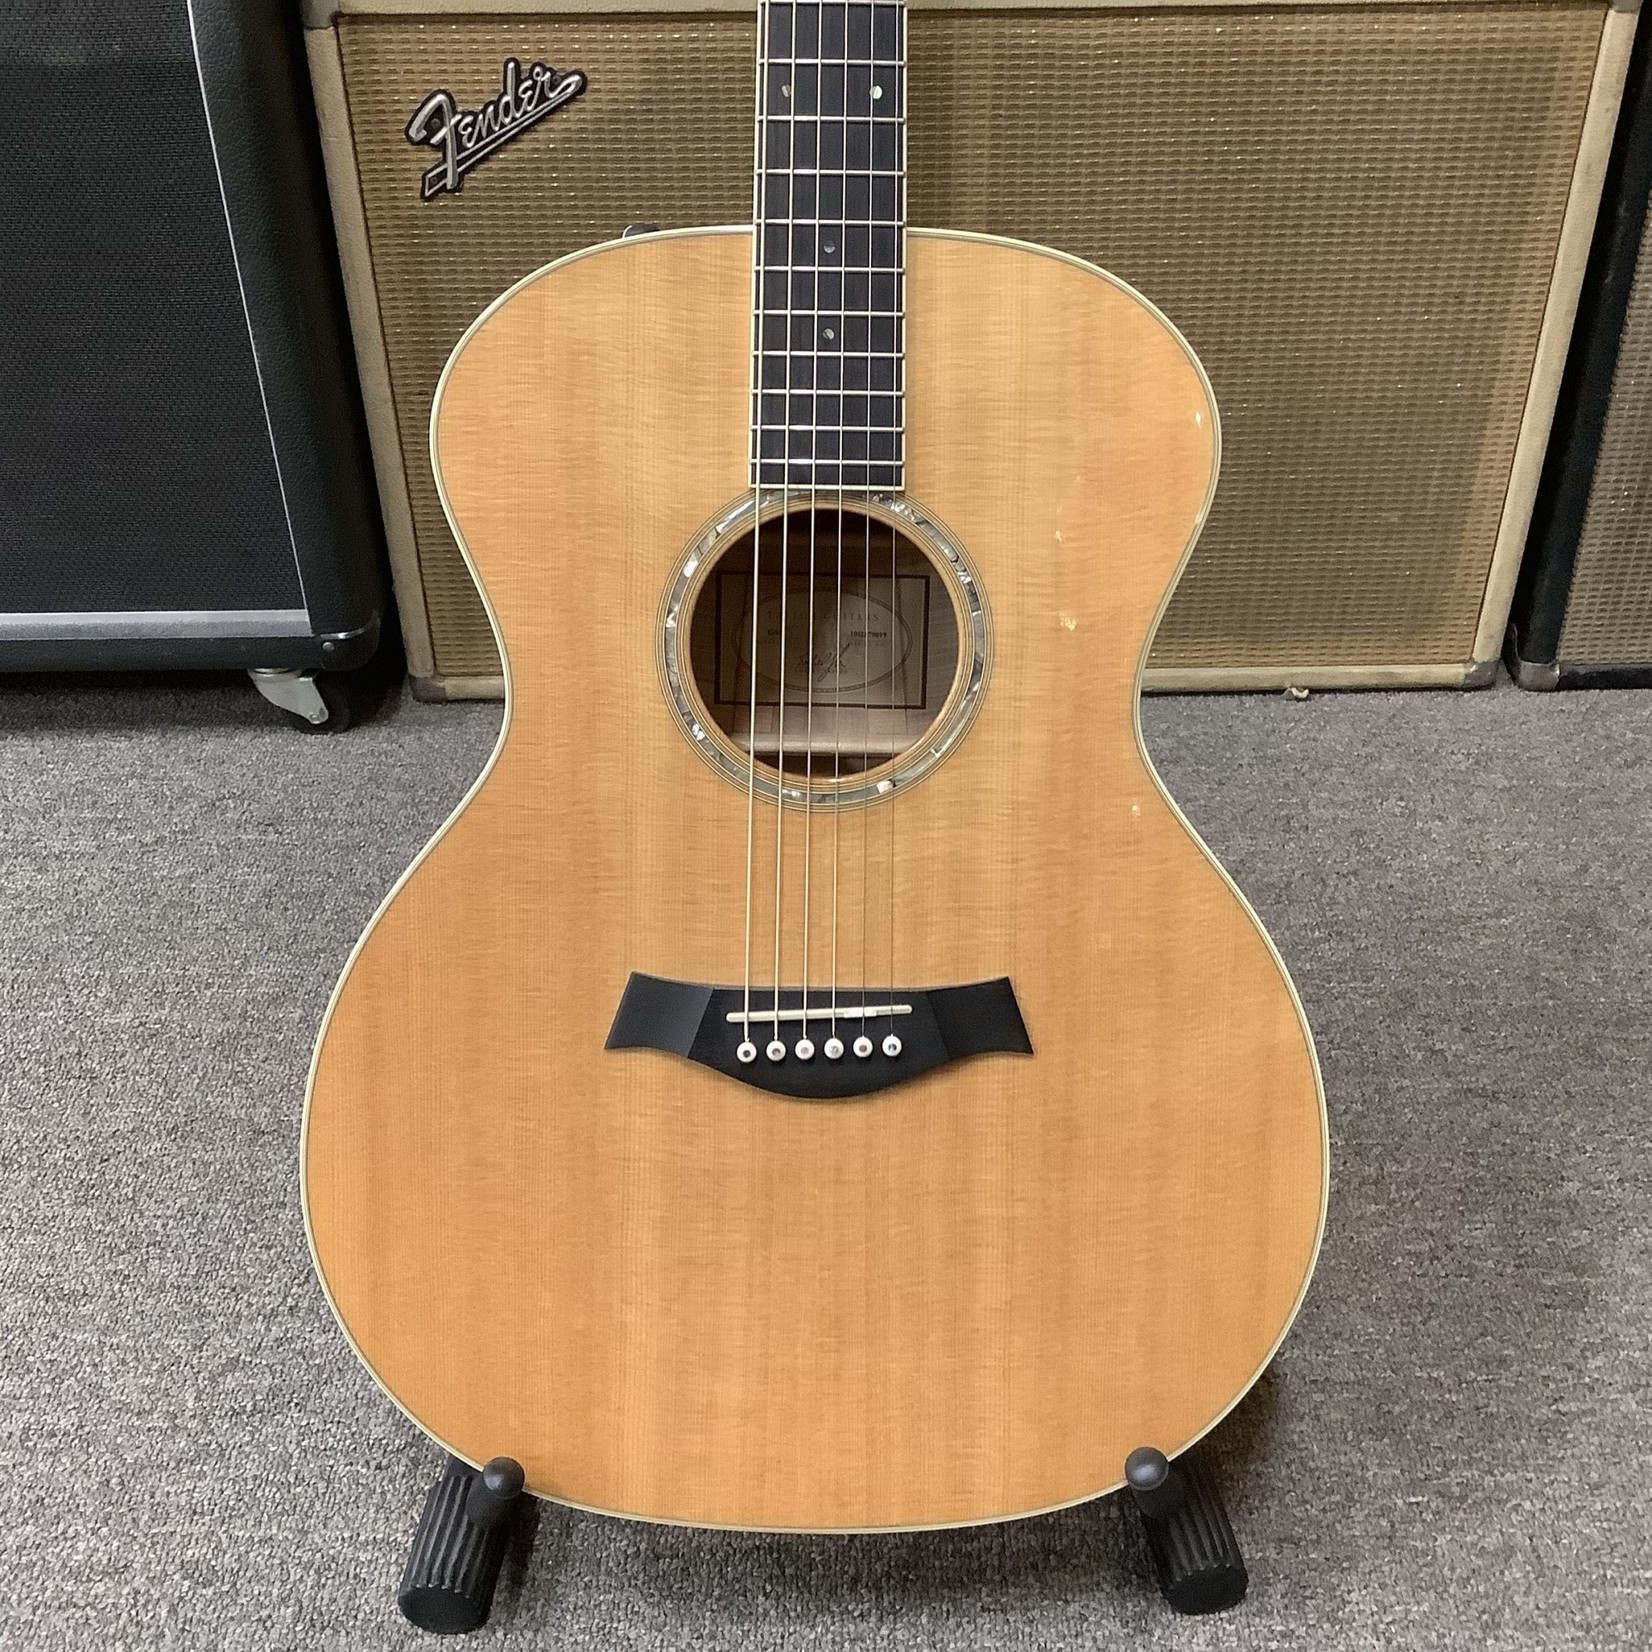 Taylor Taylor GA6 Custom Flamed Maple Back and Sides, Non-Cut Electric